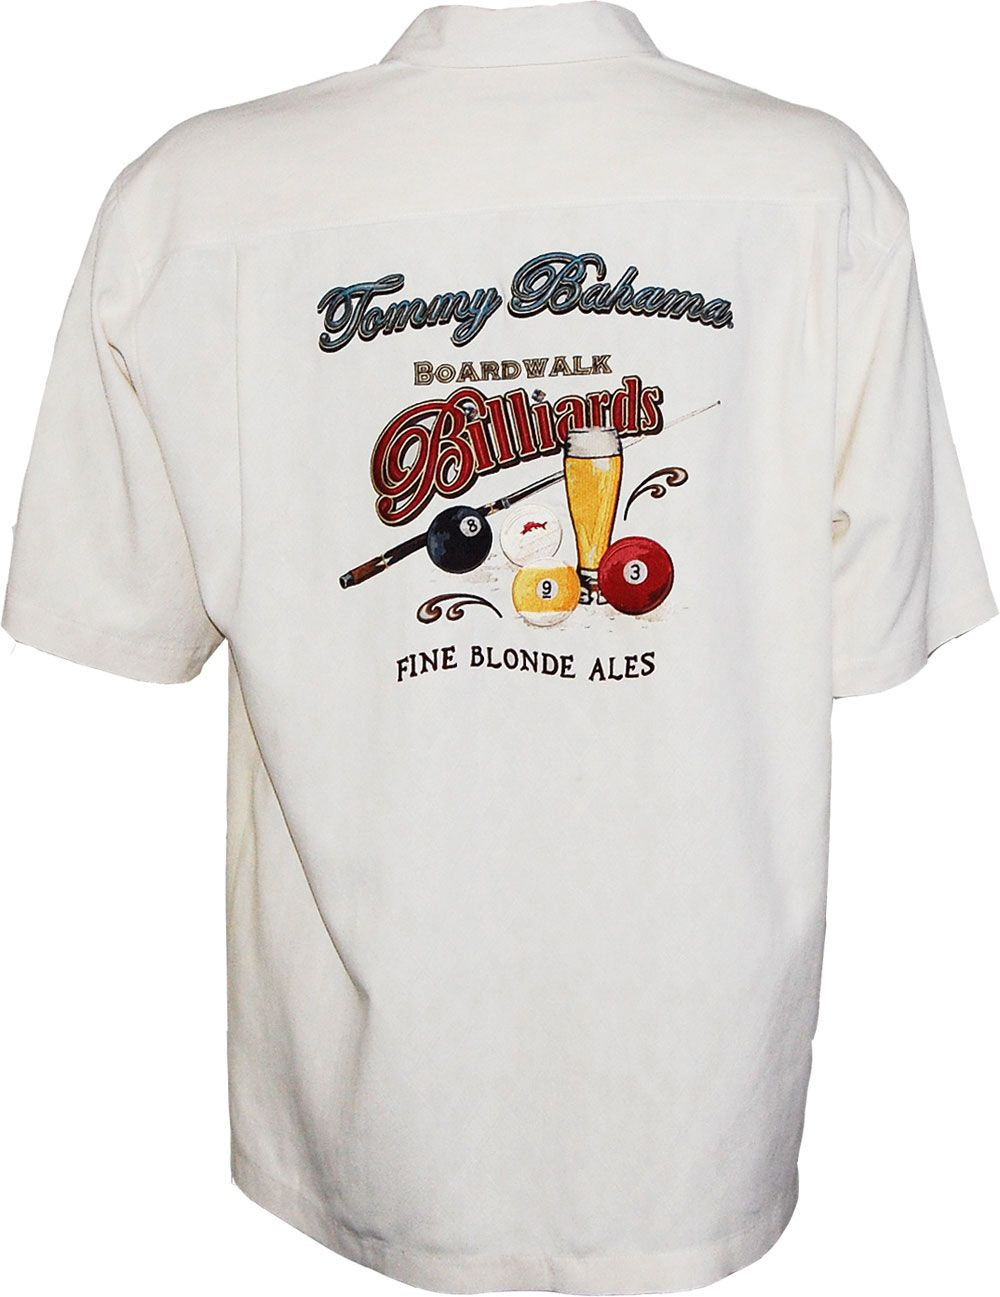 Tommy Bahama Boardwalk Billiards Signature Camp Shirt